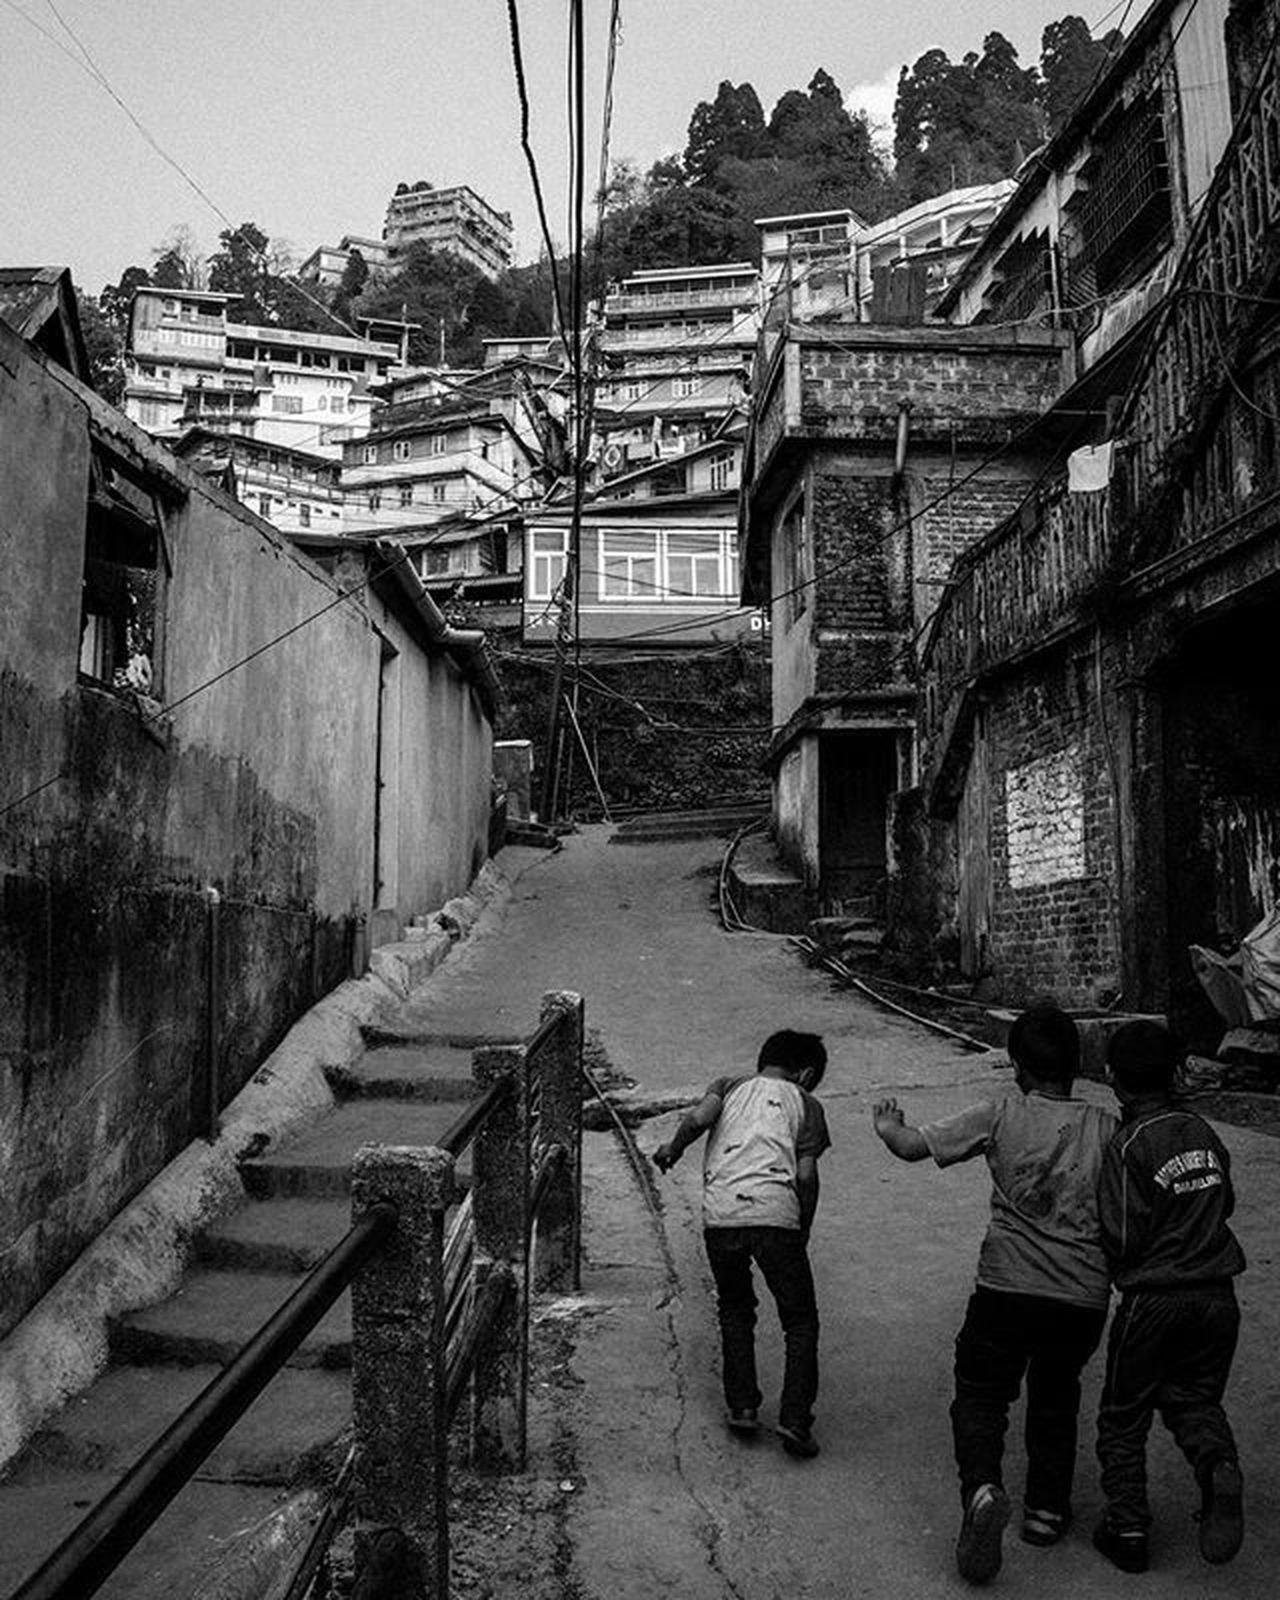 Kids playing at streets of Darjeeling . . . . Jj_streetphotography Moodygrams Highcontrast Foto_blackwhite Amateurs_bnw Bnw_planet Bnw_rose Bnw Travel Bnw_moscow Bnw_india Travelingram Natgeotravel Lonelyplanetindia Ig_india Ig_bengals OnlyinIndia IndiaLove Natgeo Betterphotography Onlyinbengal Indiaphotoproject _oye _soi Indiastreet indiaig mypixeldiary photooftheday